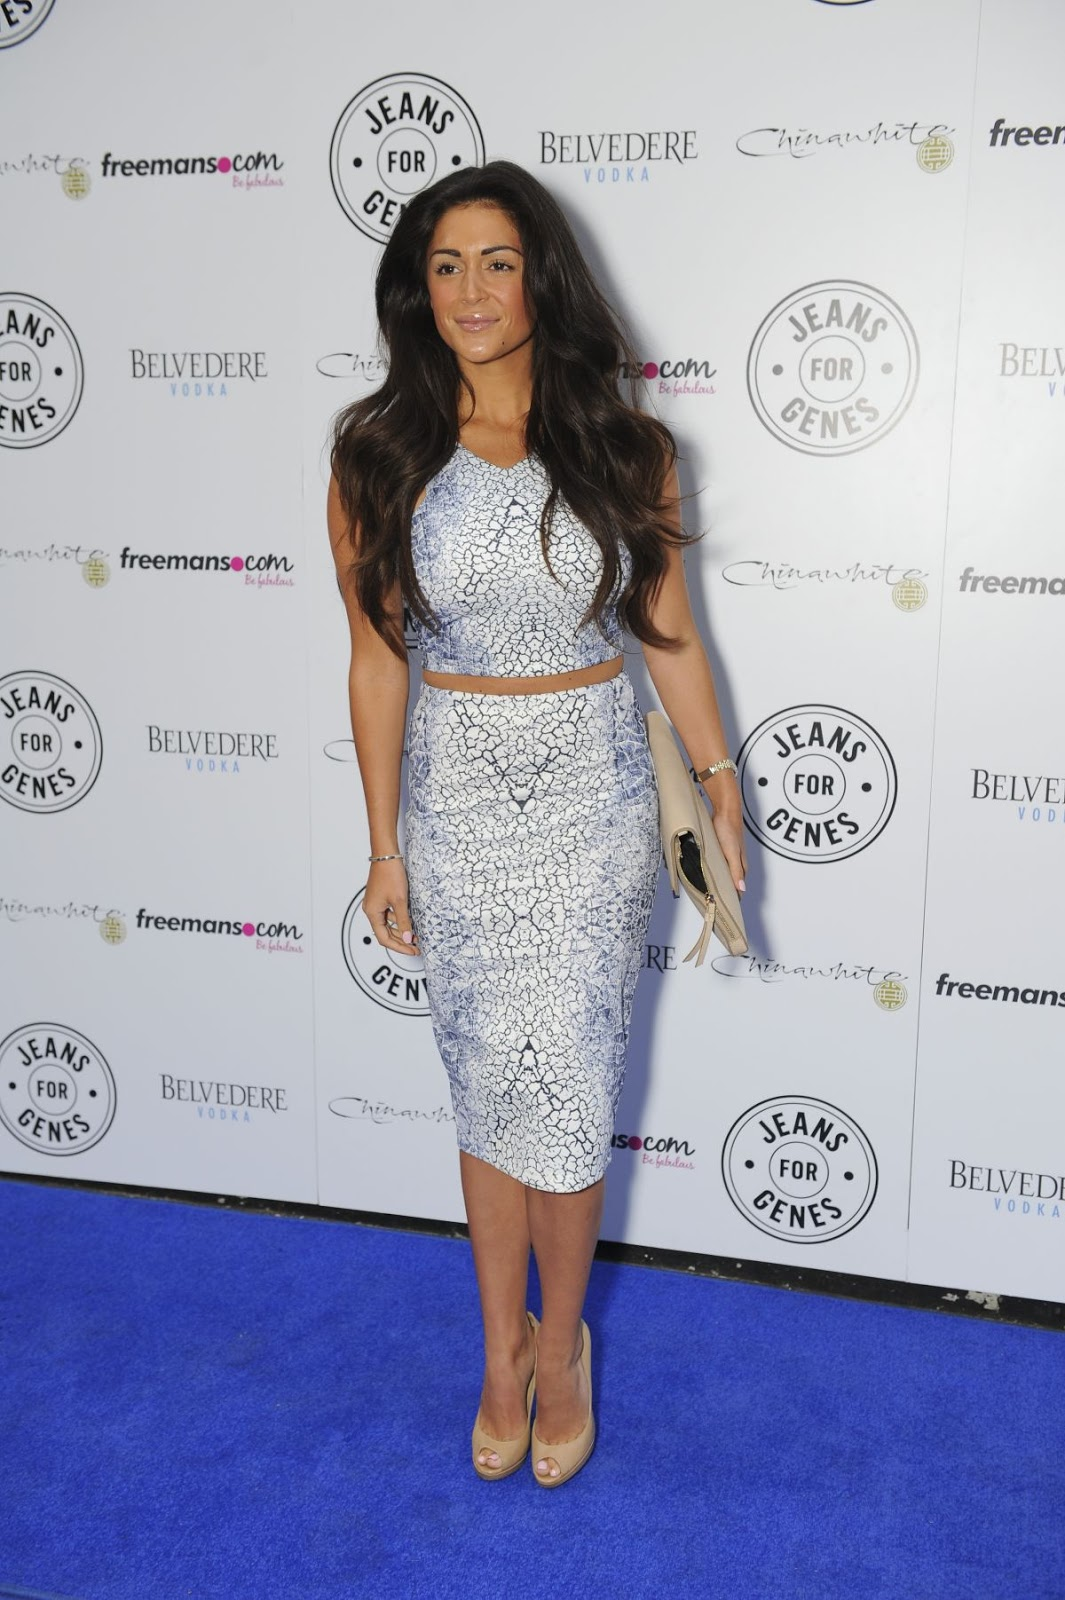 HD Photos of Casey Batchelor at Jeans for Genes Day in London